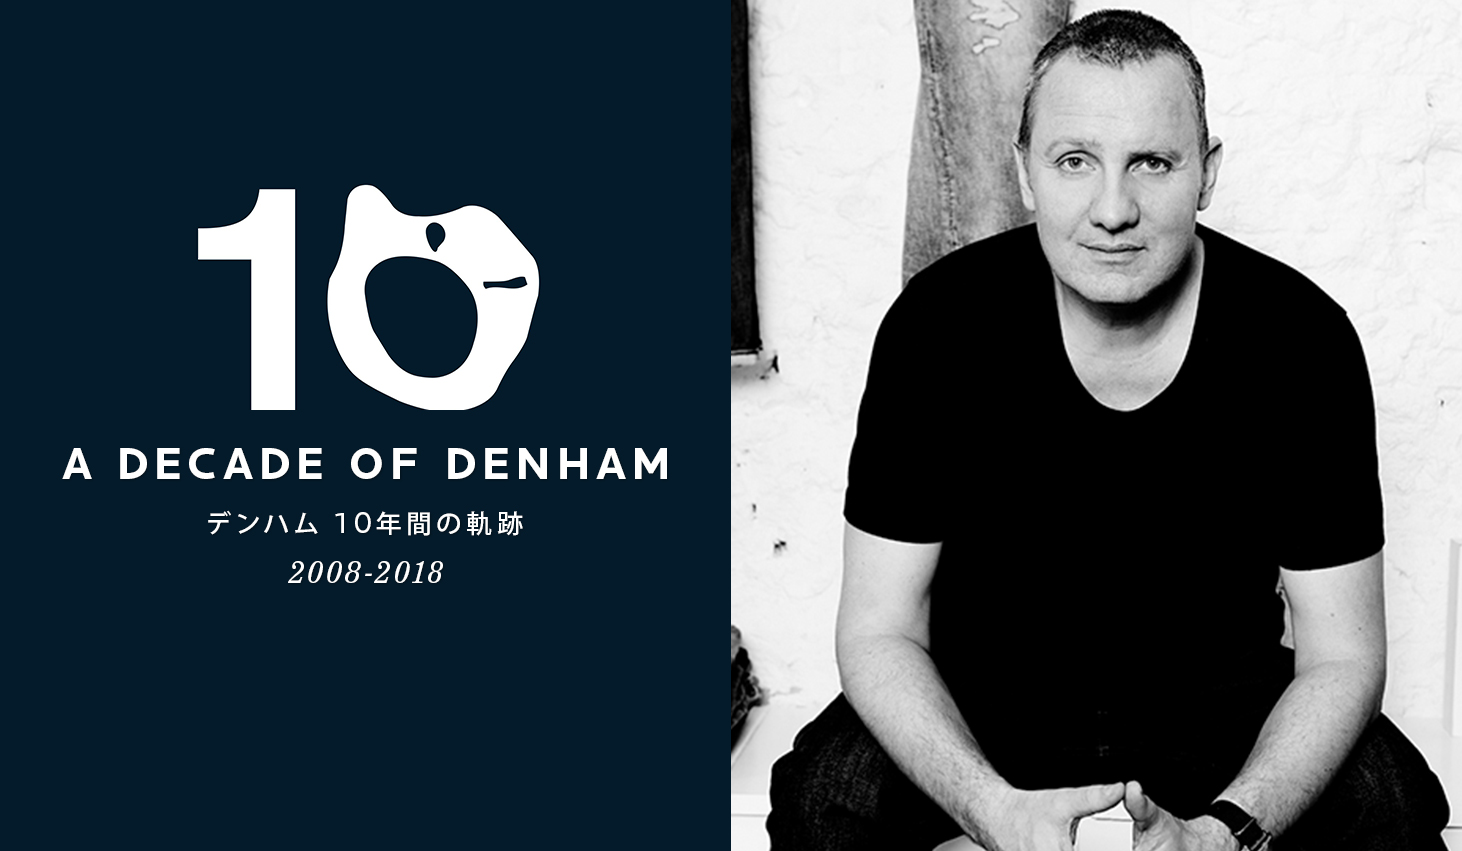 A DECADE OF DENHAM